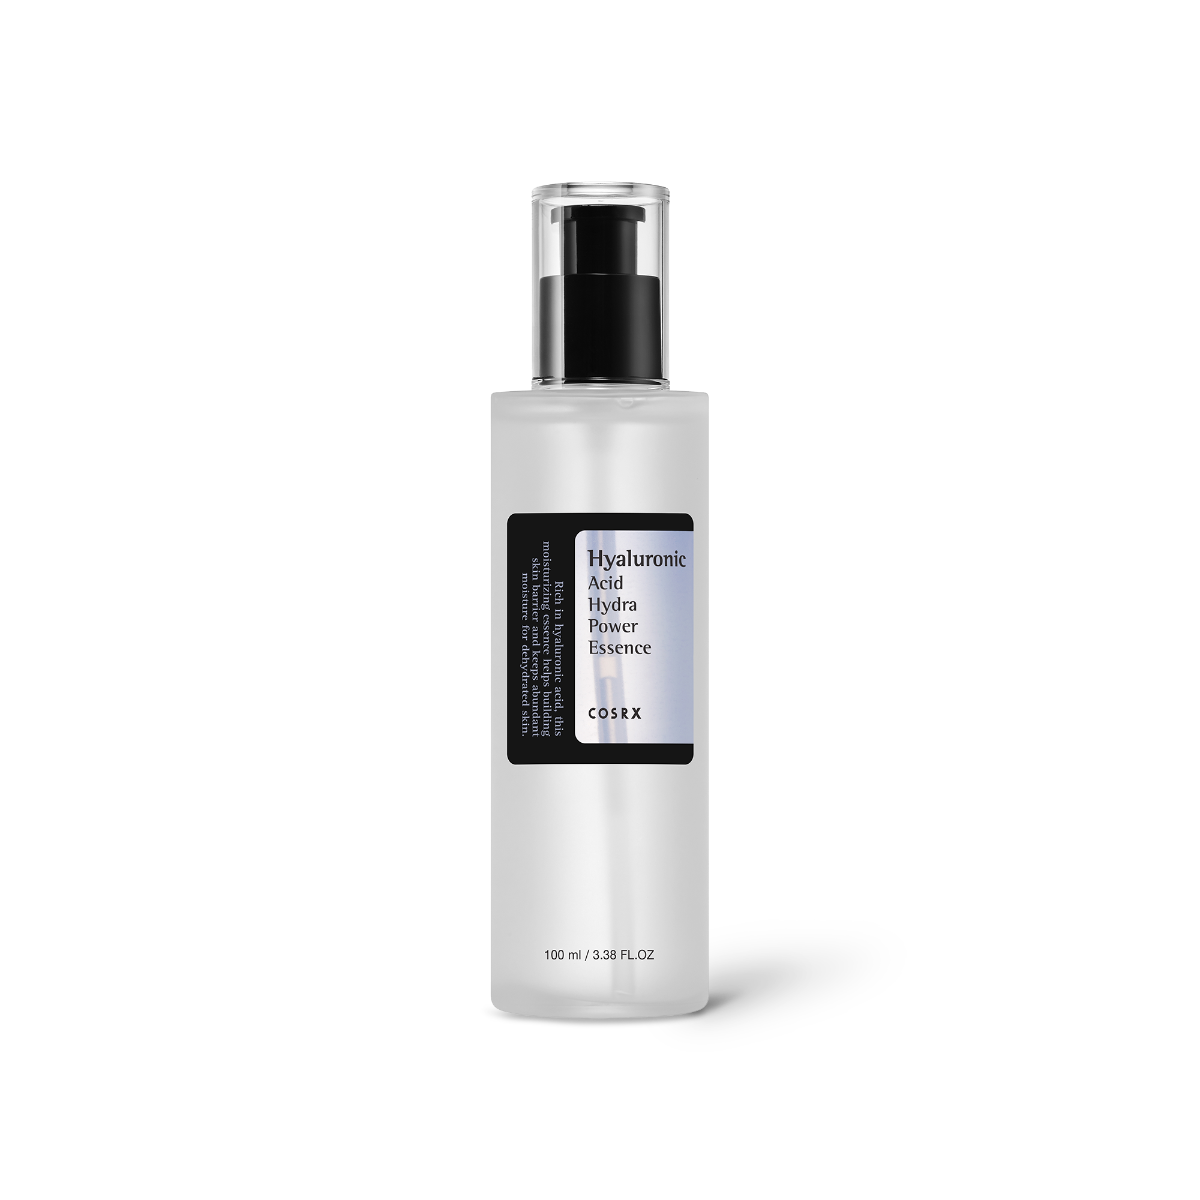 COSRX Hyaluronic Acid Hydra Power Essence - misumicosmeticsuk